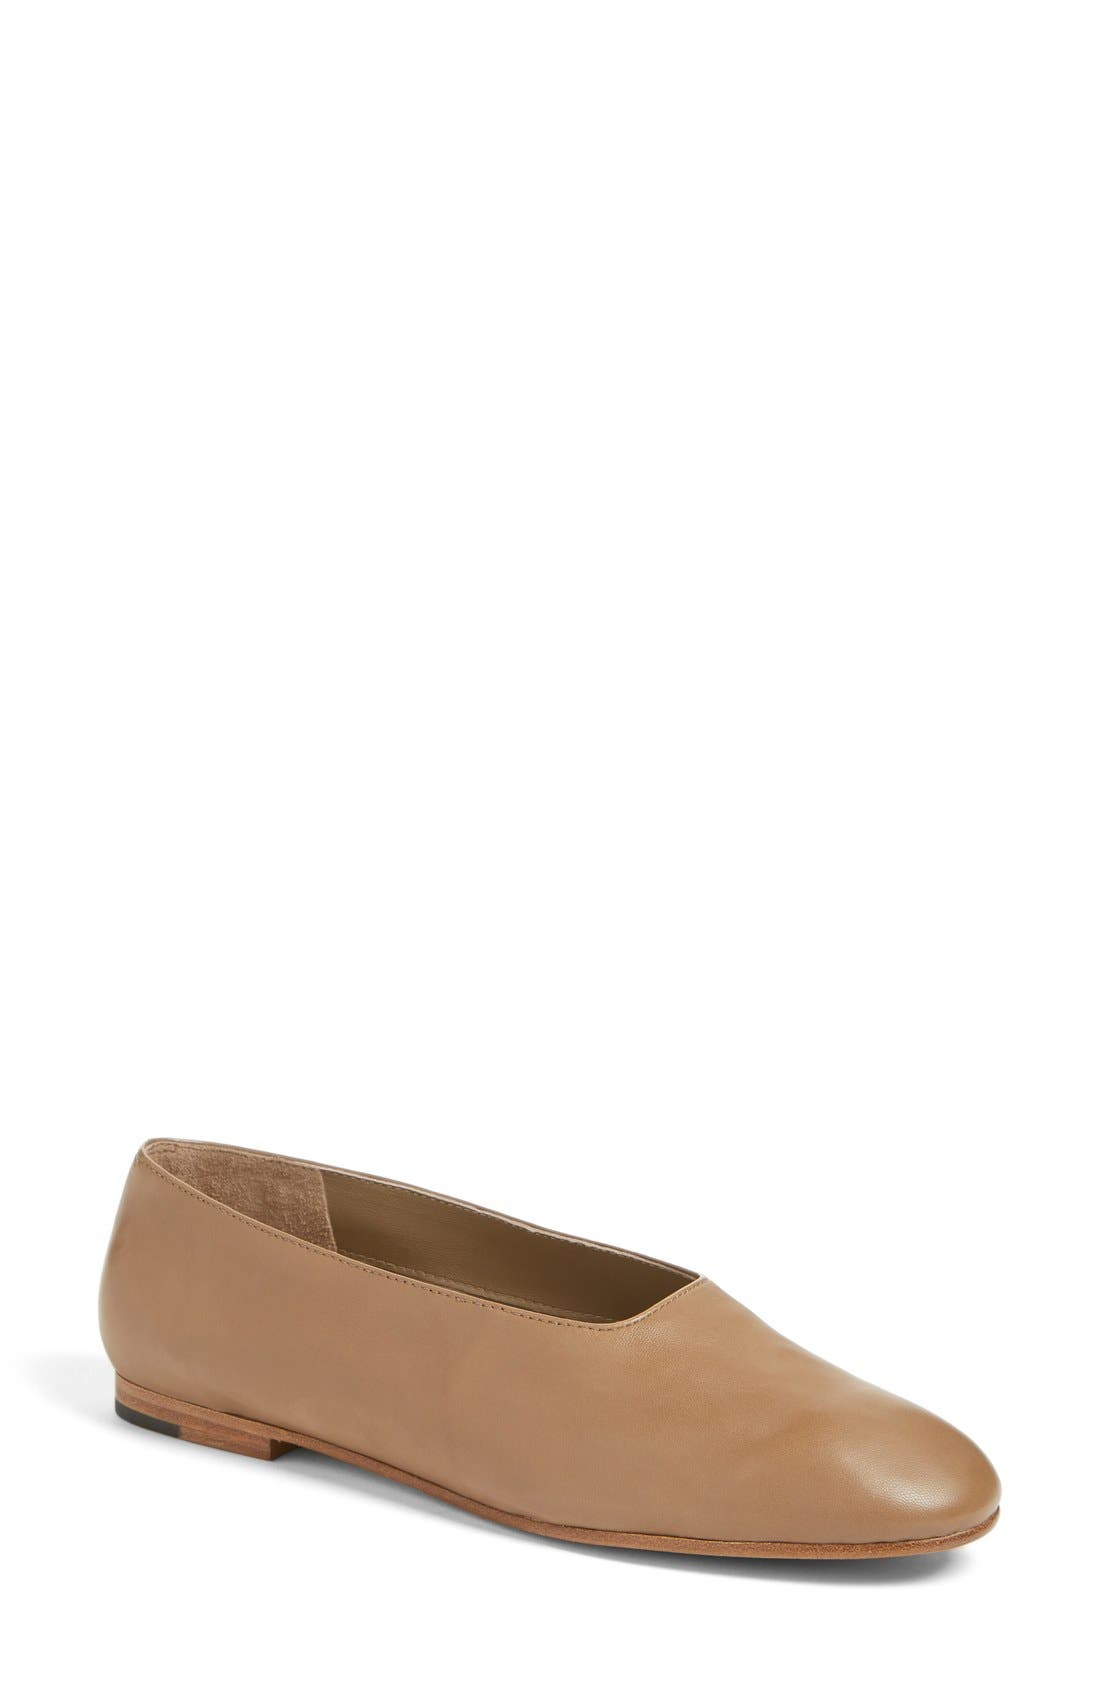 'Maxwell' Flat,                             Main thumbnail 1, color,                             Dark Taupe Leather